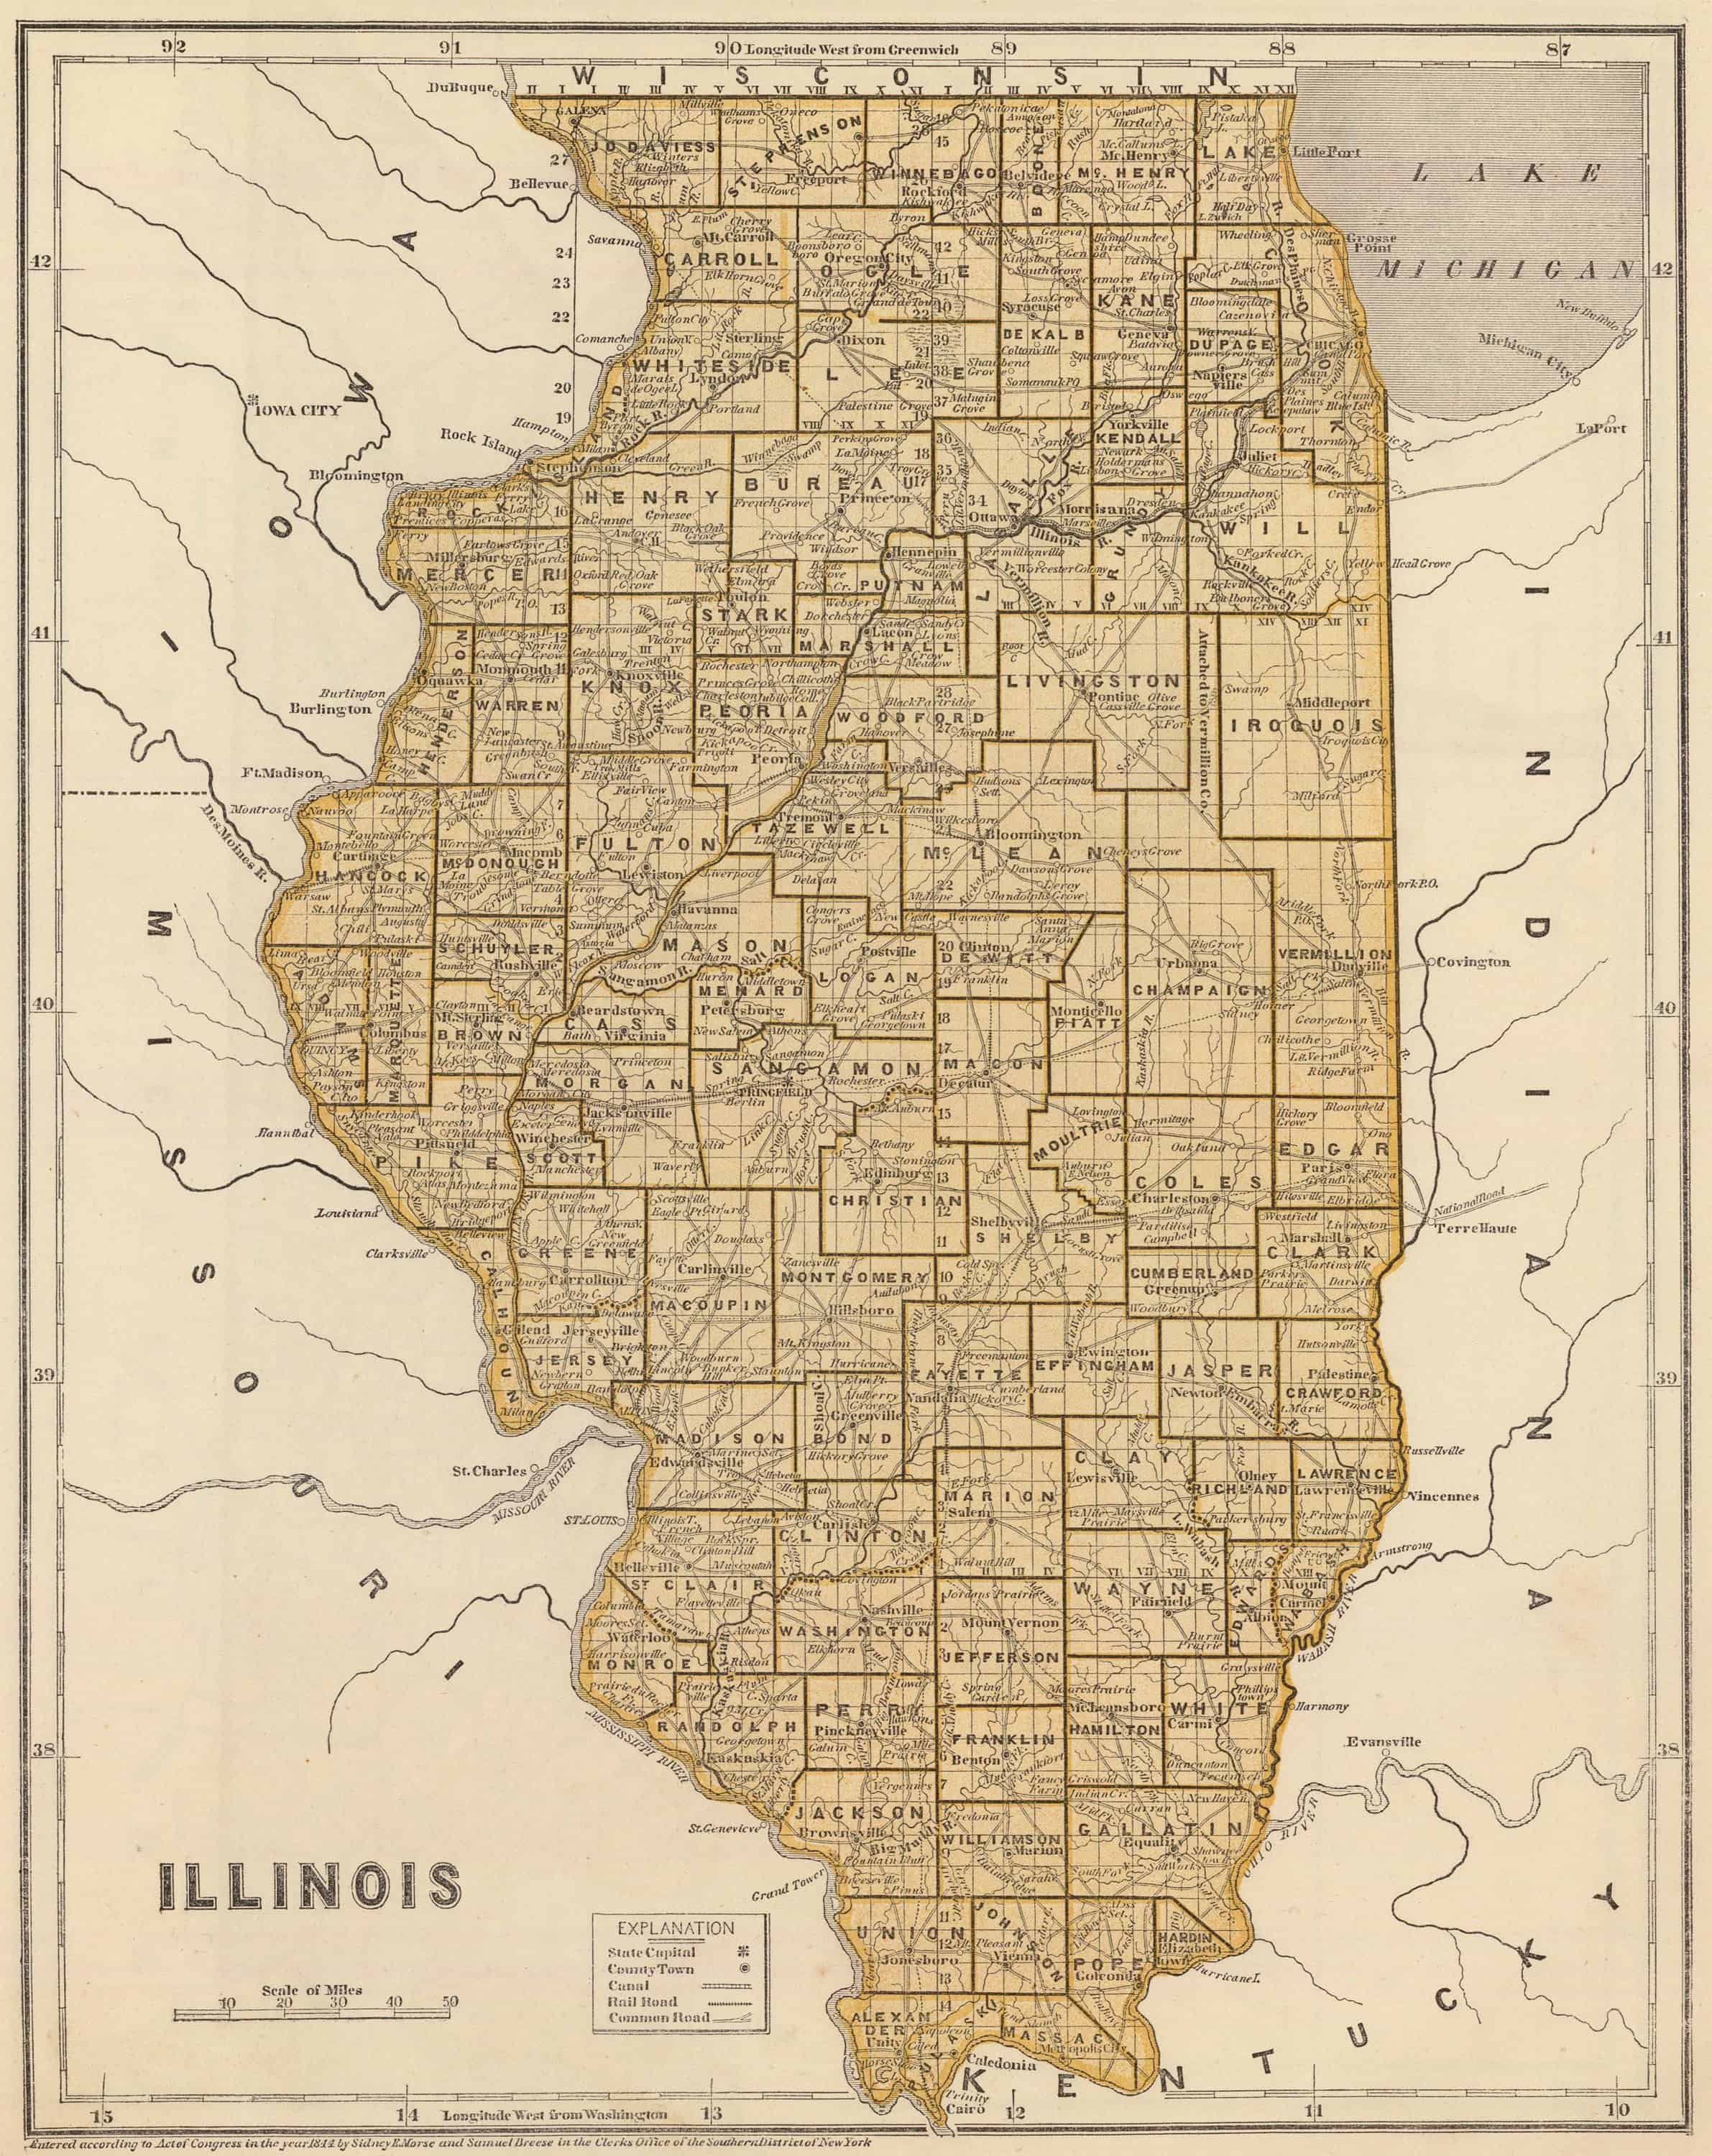 Old Historical City, County and State Maps of Illinios on il counties and cities, il zip code map, il highway map, illinois cities, il county map, il state map, il hwy map,